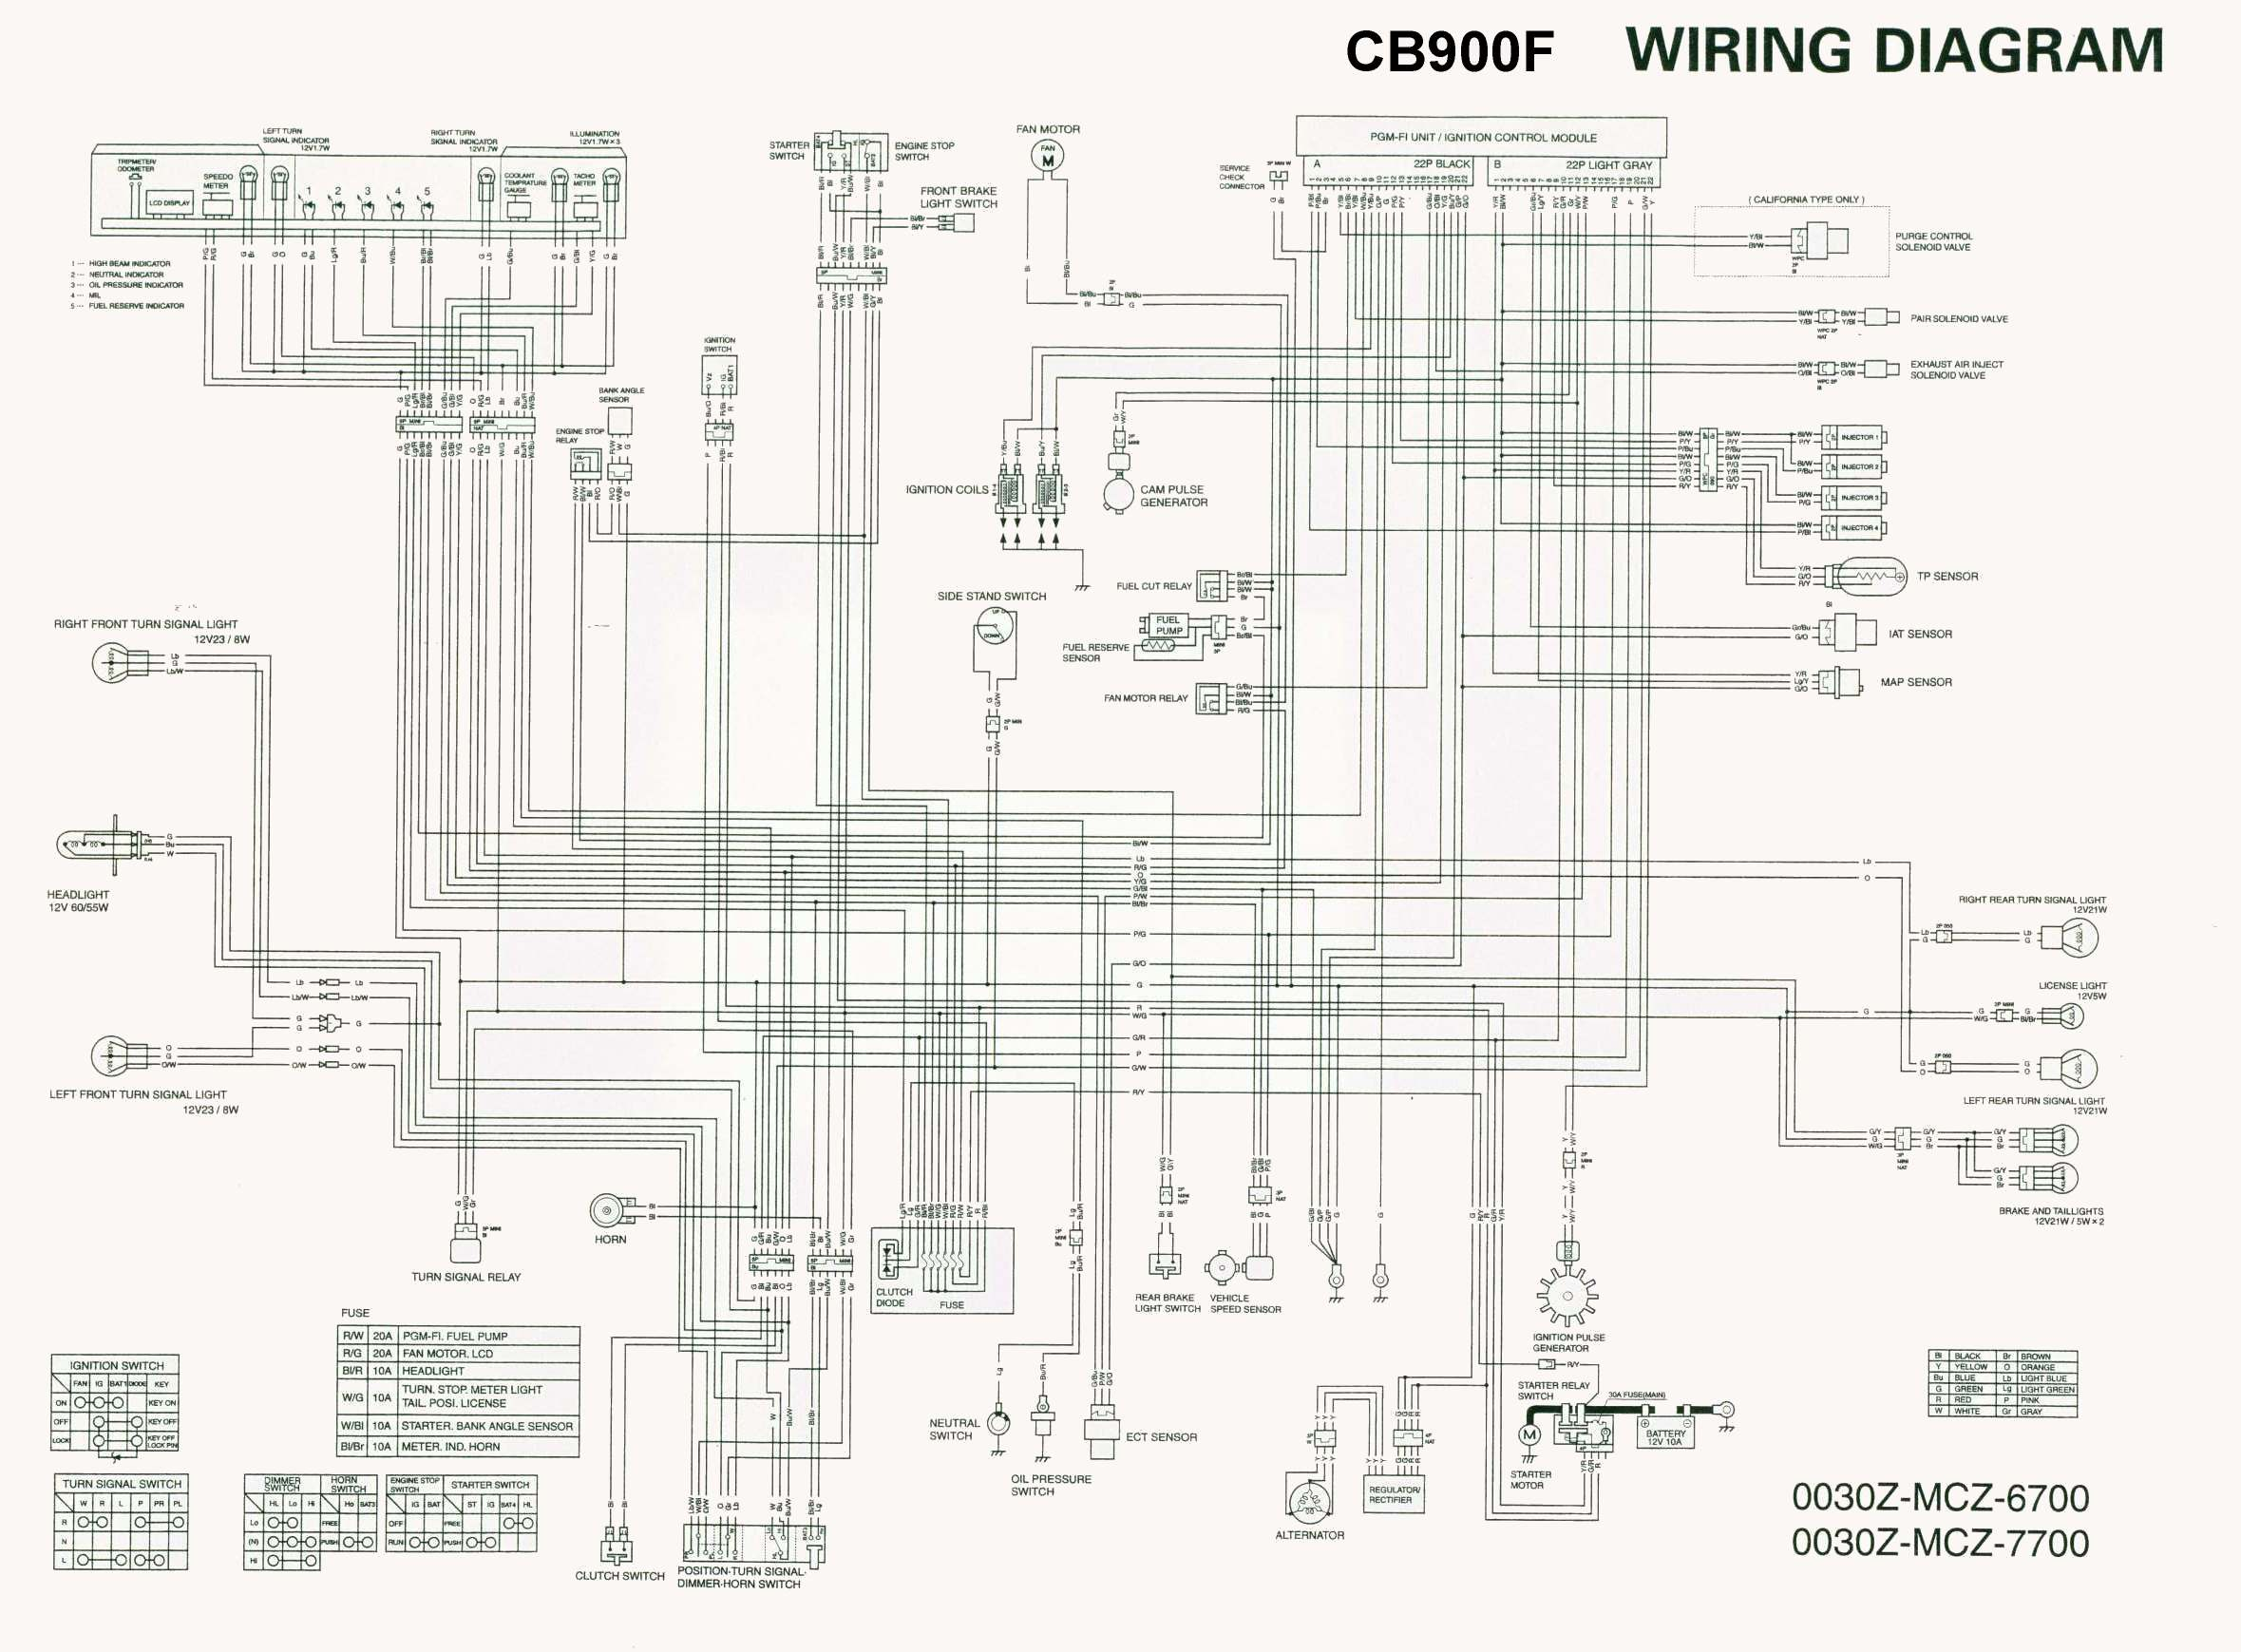 Wrg Wiring Diagram For 72 Super Glide